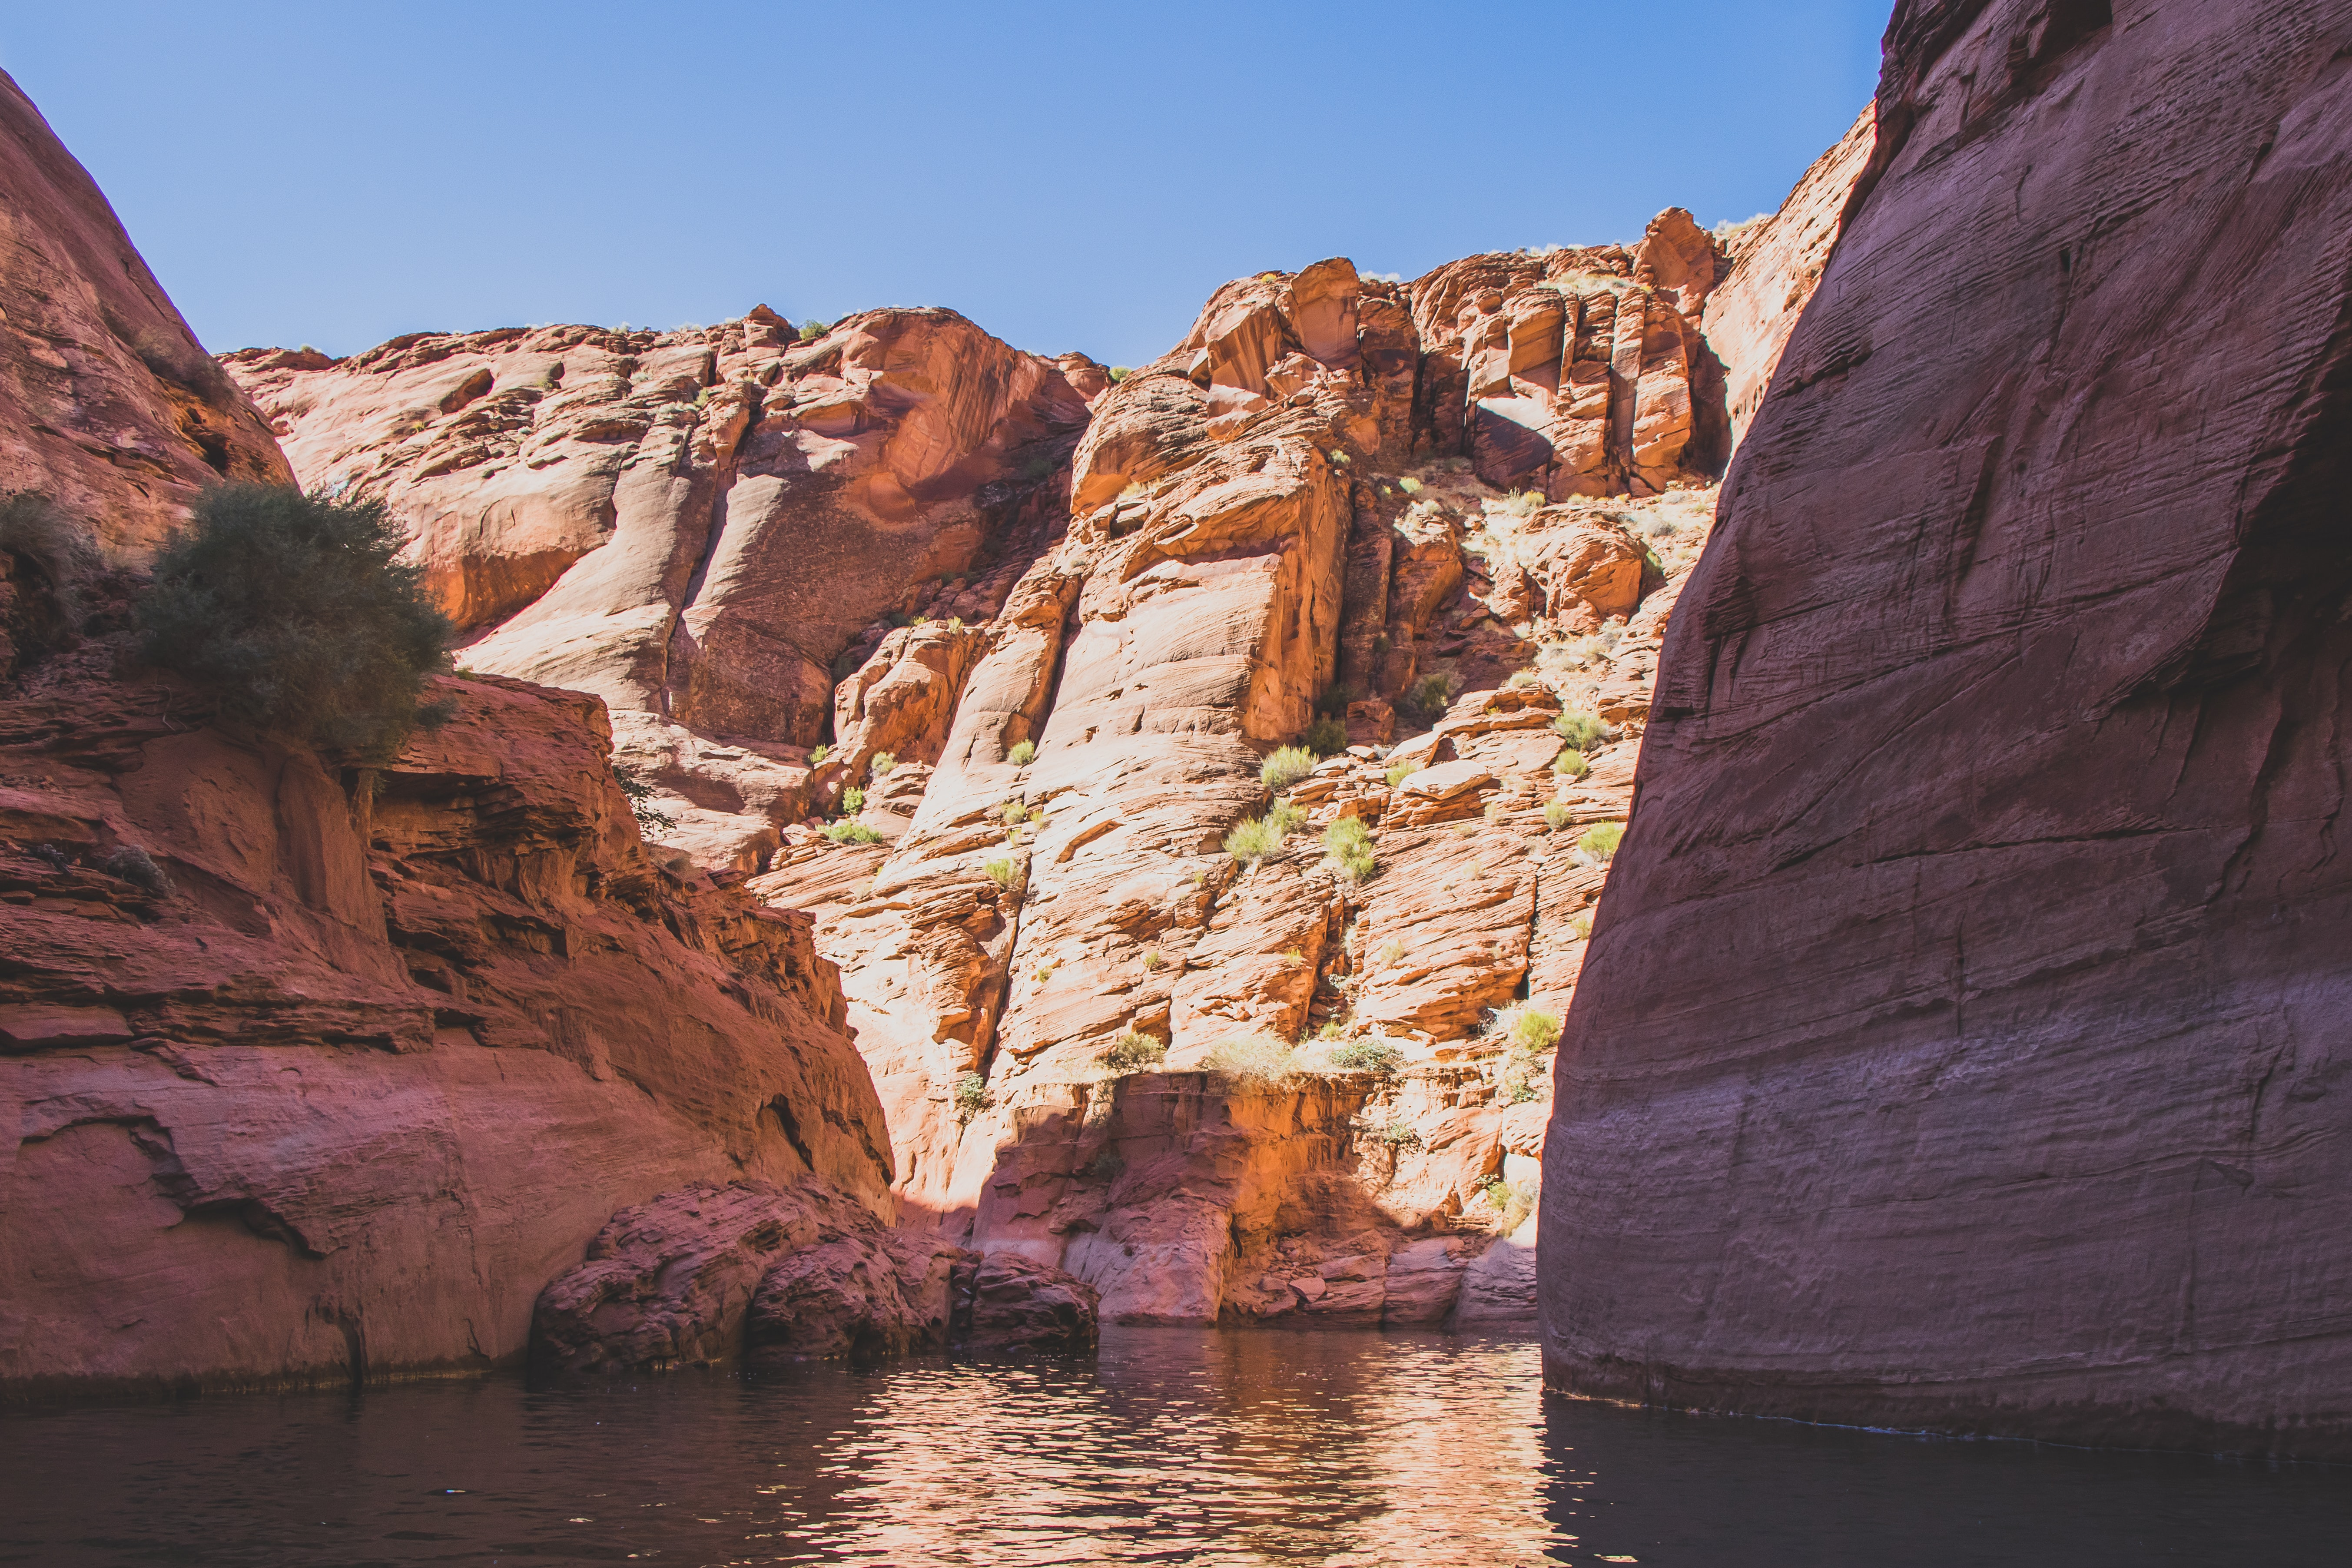 river surrounded of brown cliffs during daytime